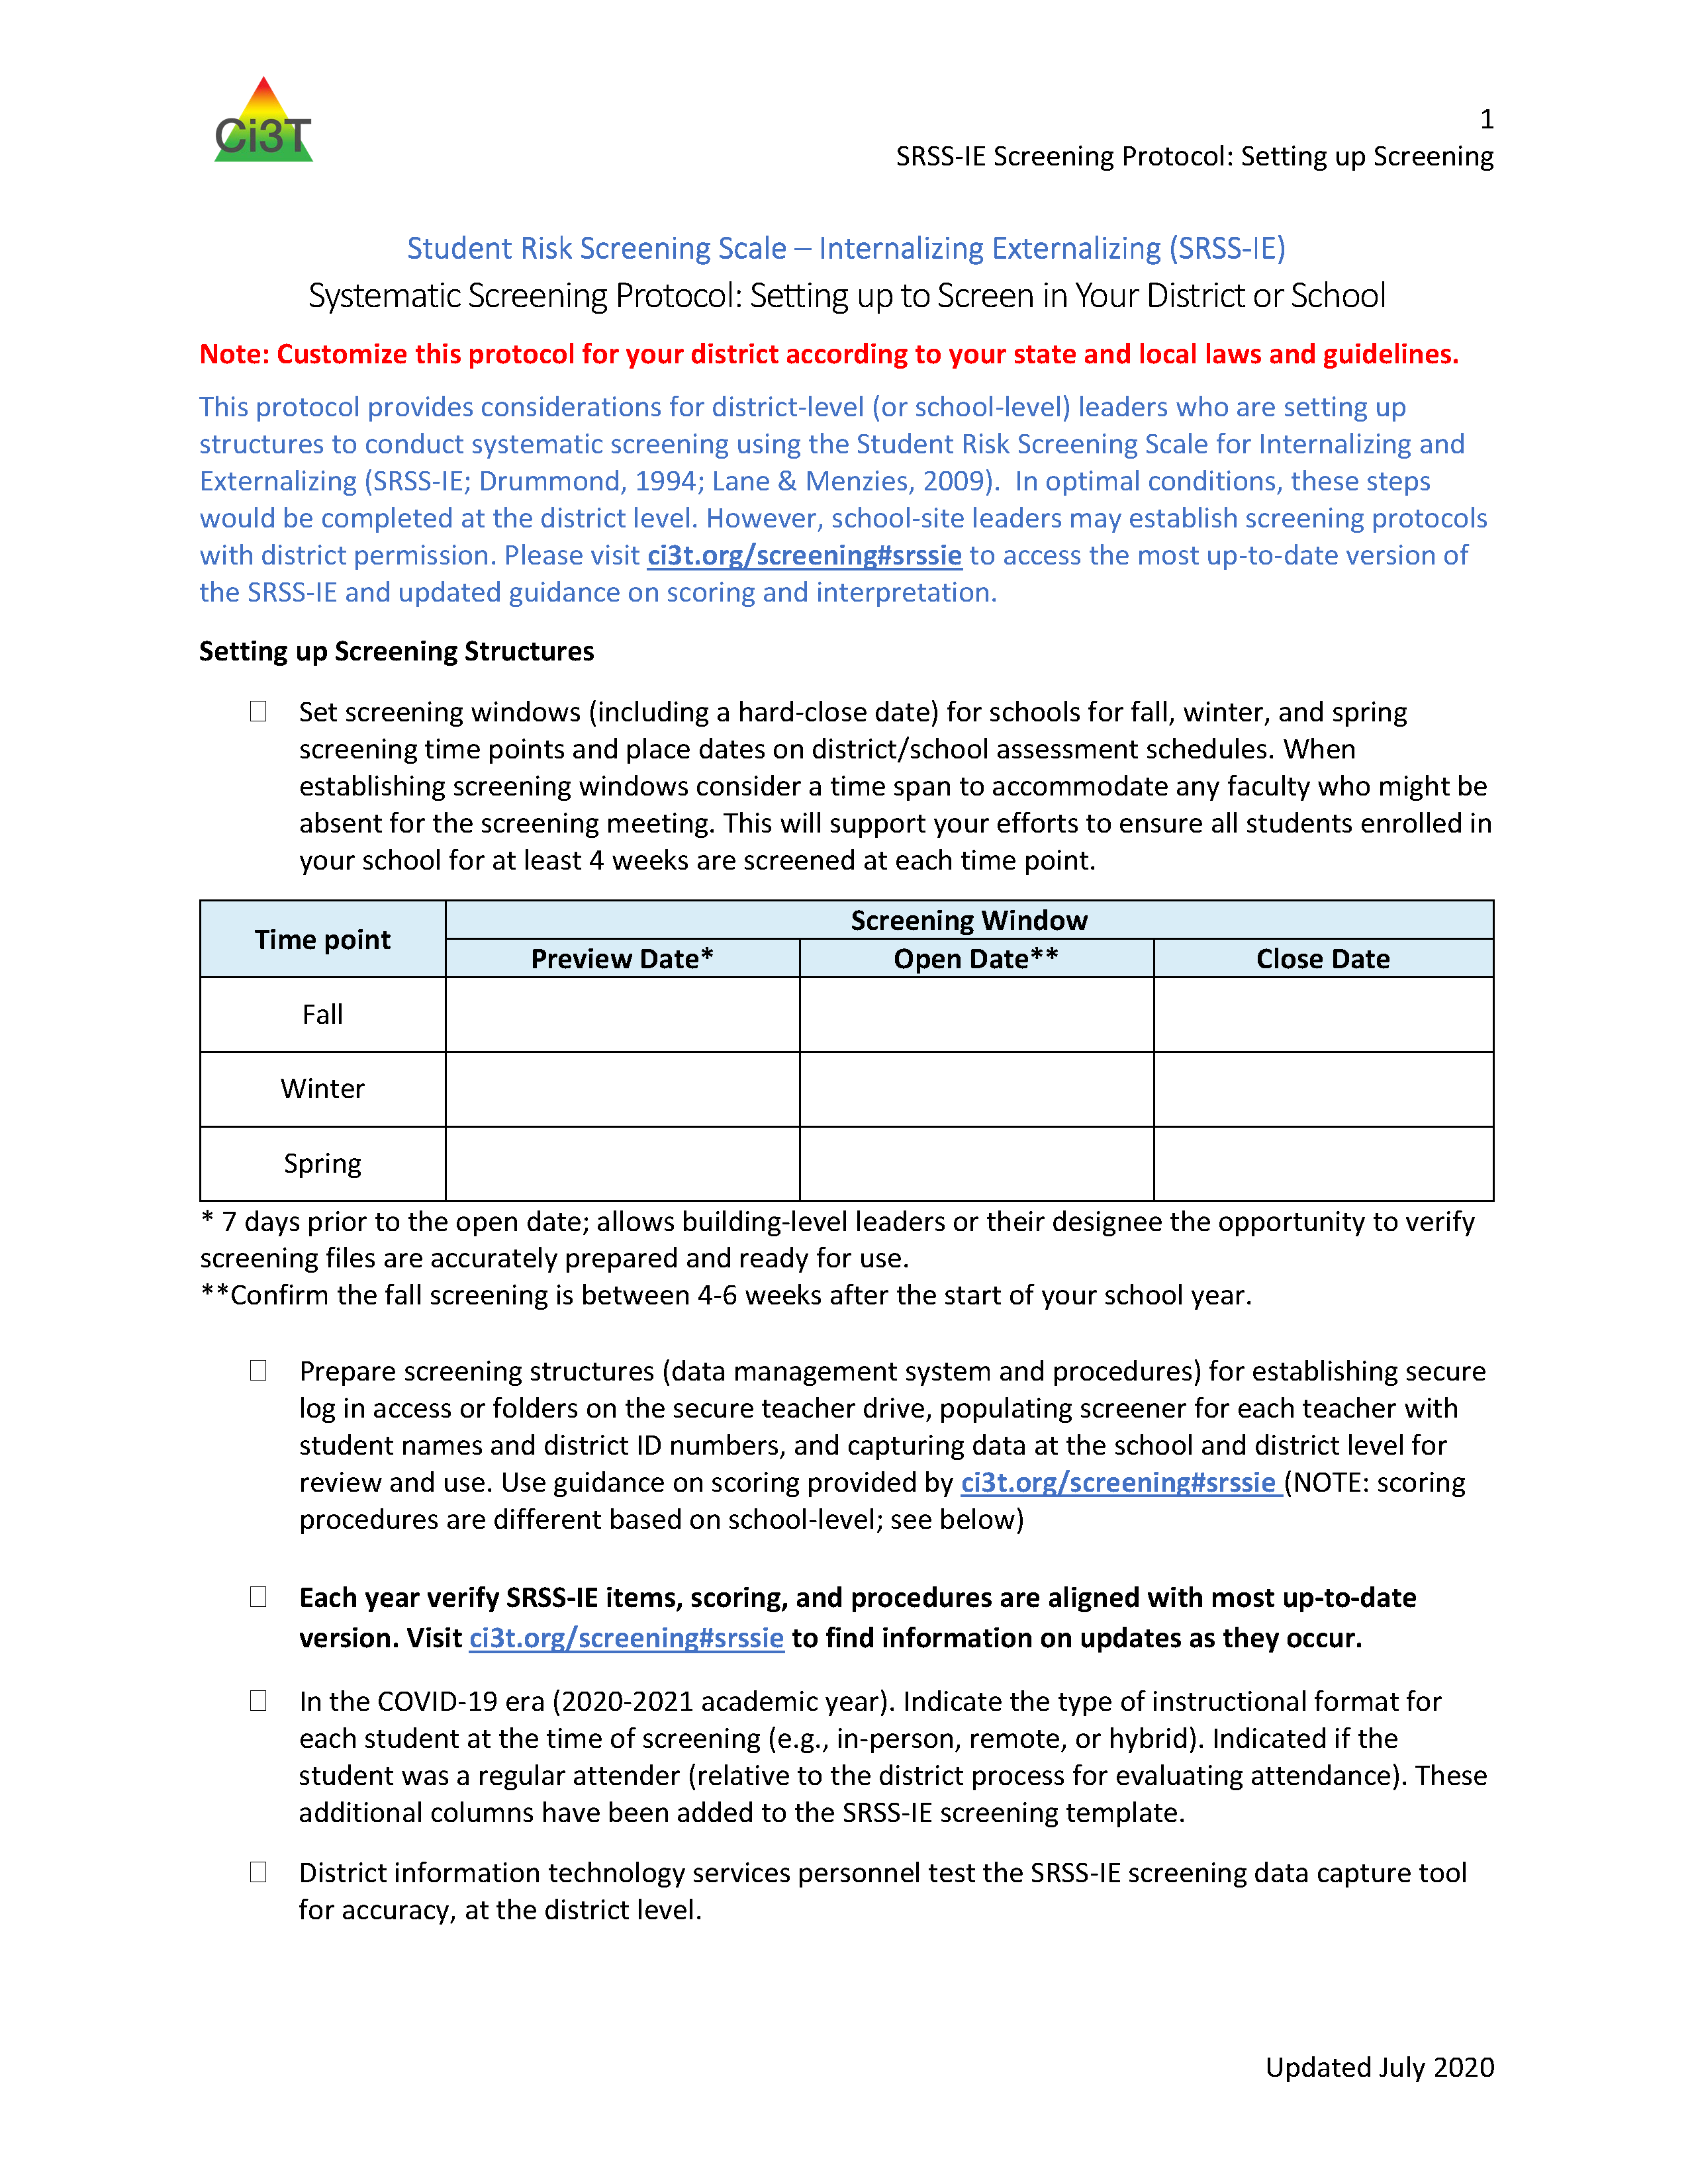 2020 2021 SRSS IE Screening Protocol: Setting up to Screen in Your District or School